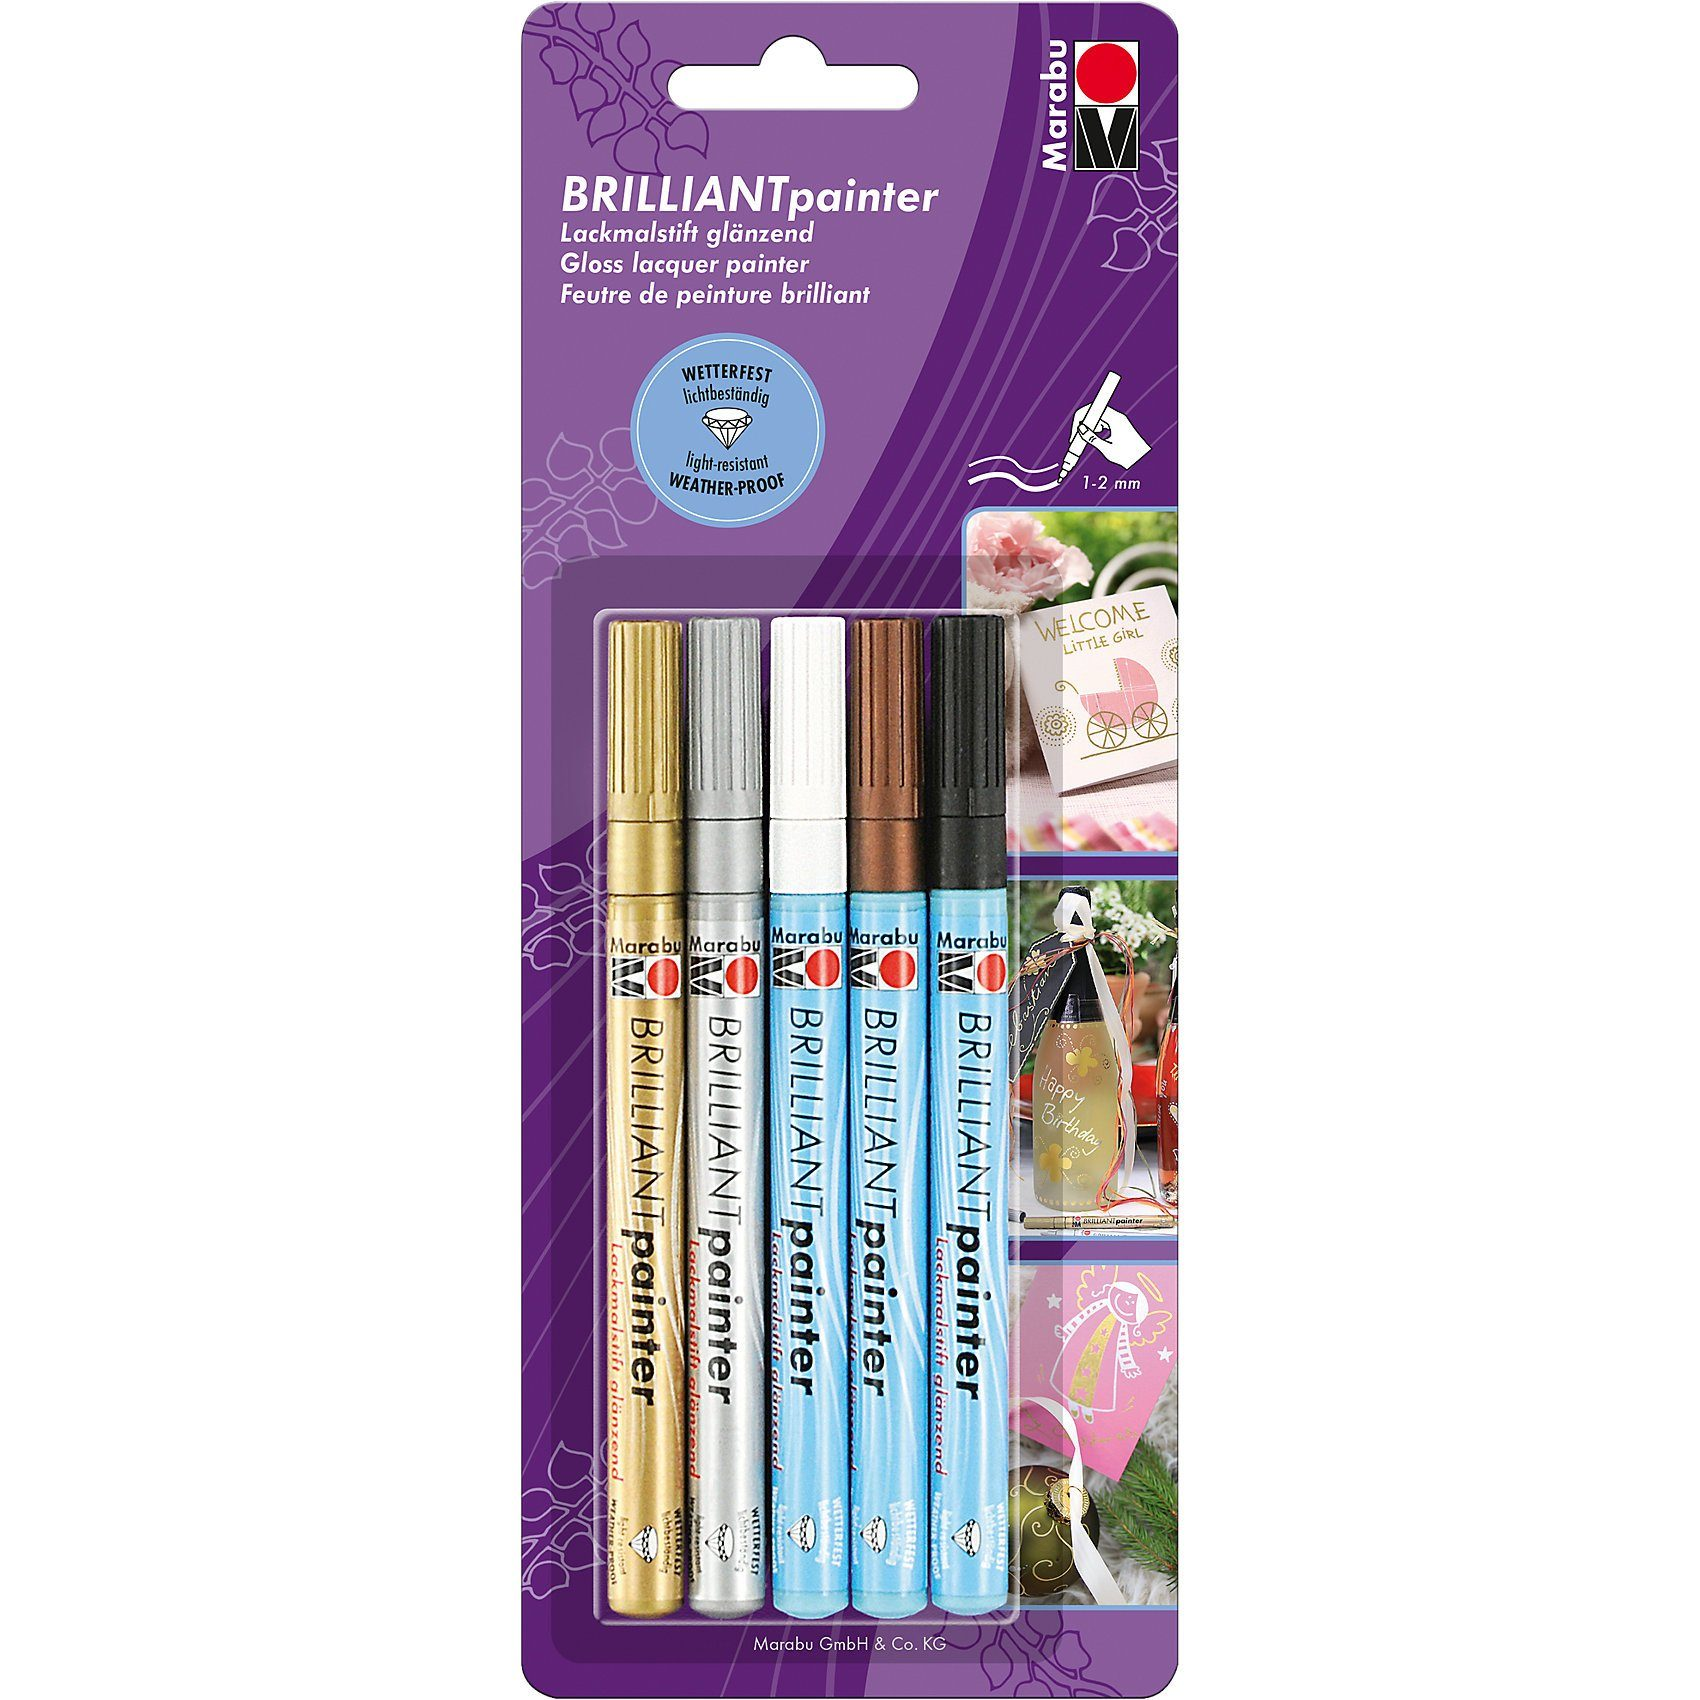 Marabu Brilliant Painter Dekormarker, 5 Farben